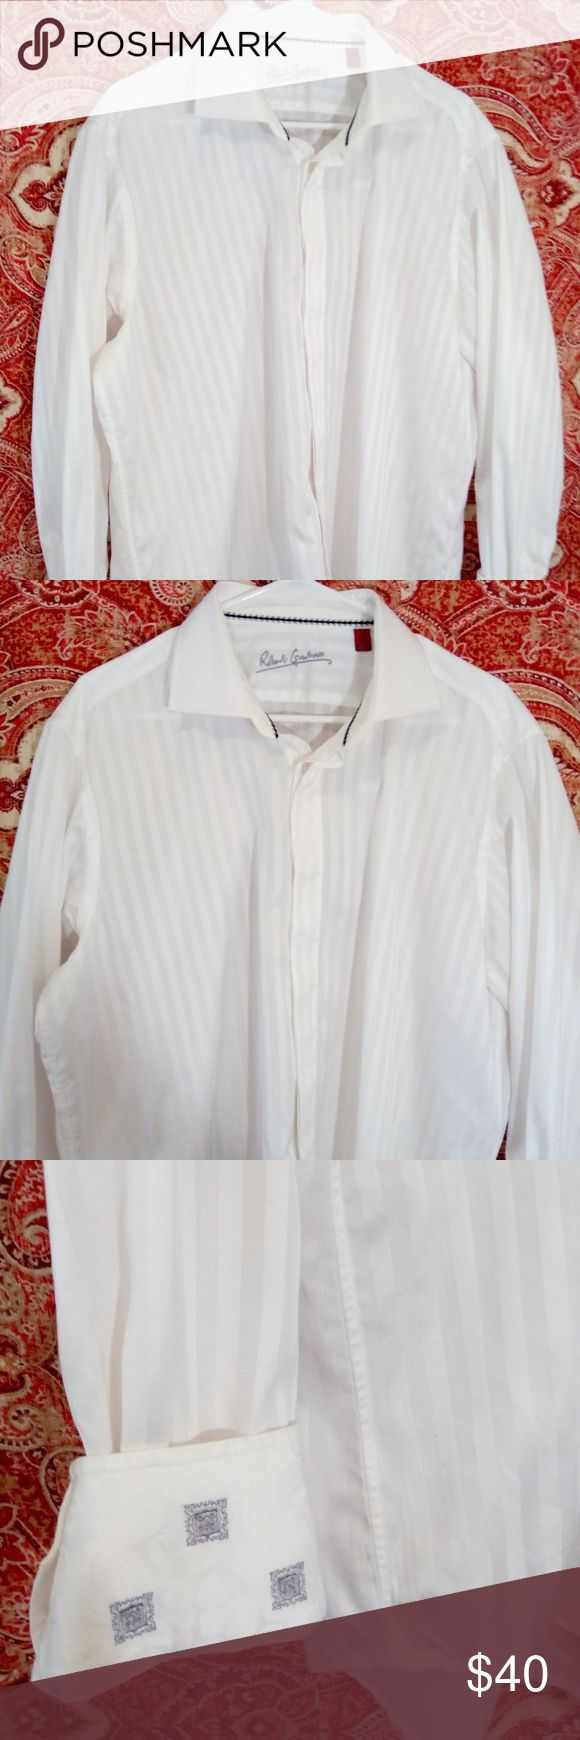 ROBERT GRAHAM L/S shirt  XL 17 WHITE Embroidered ROBERT GRAHAM L/S shirt  XL 17 WHITE Embroidered flip cuff / collar . Excellent Preowned Condition Robert Graham Shirts Casual Button Down Shirts